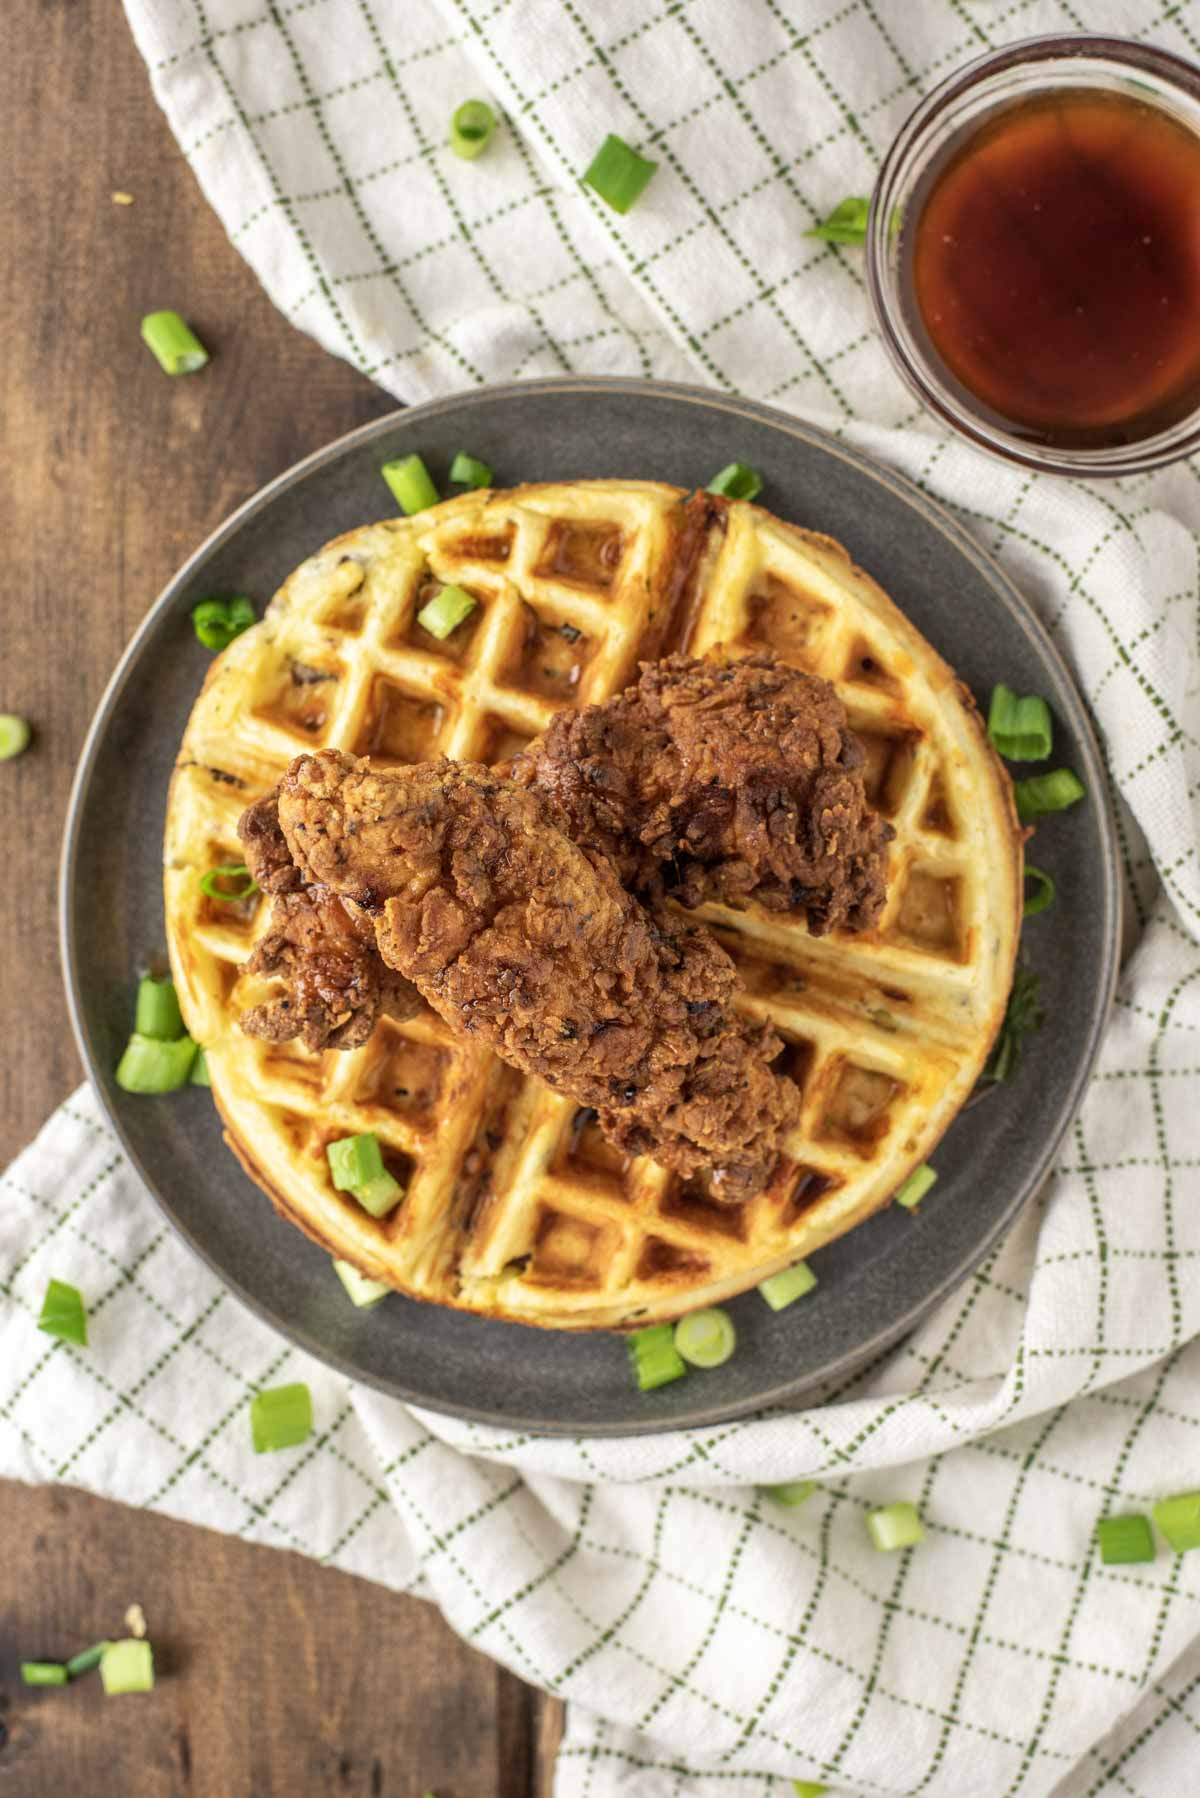 overhead shot of fried chicken and waffles on grey plate